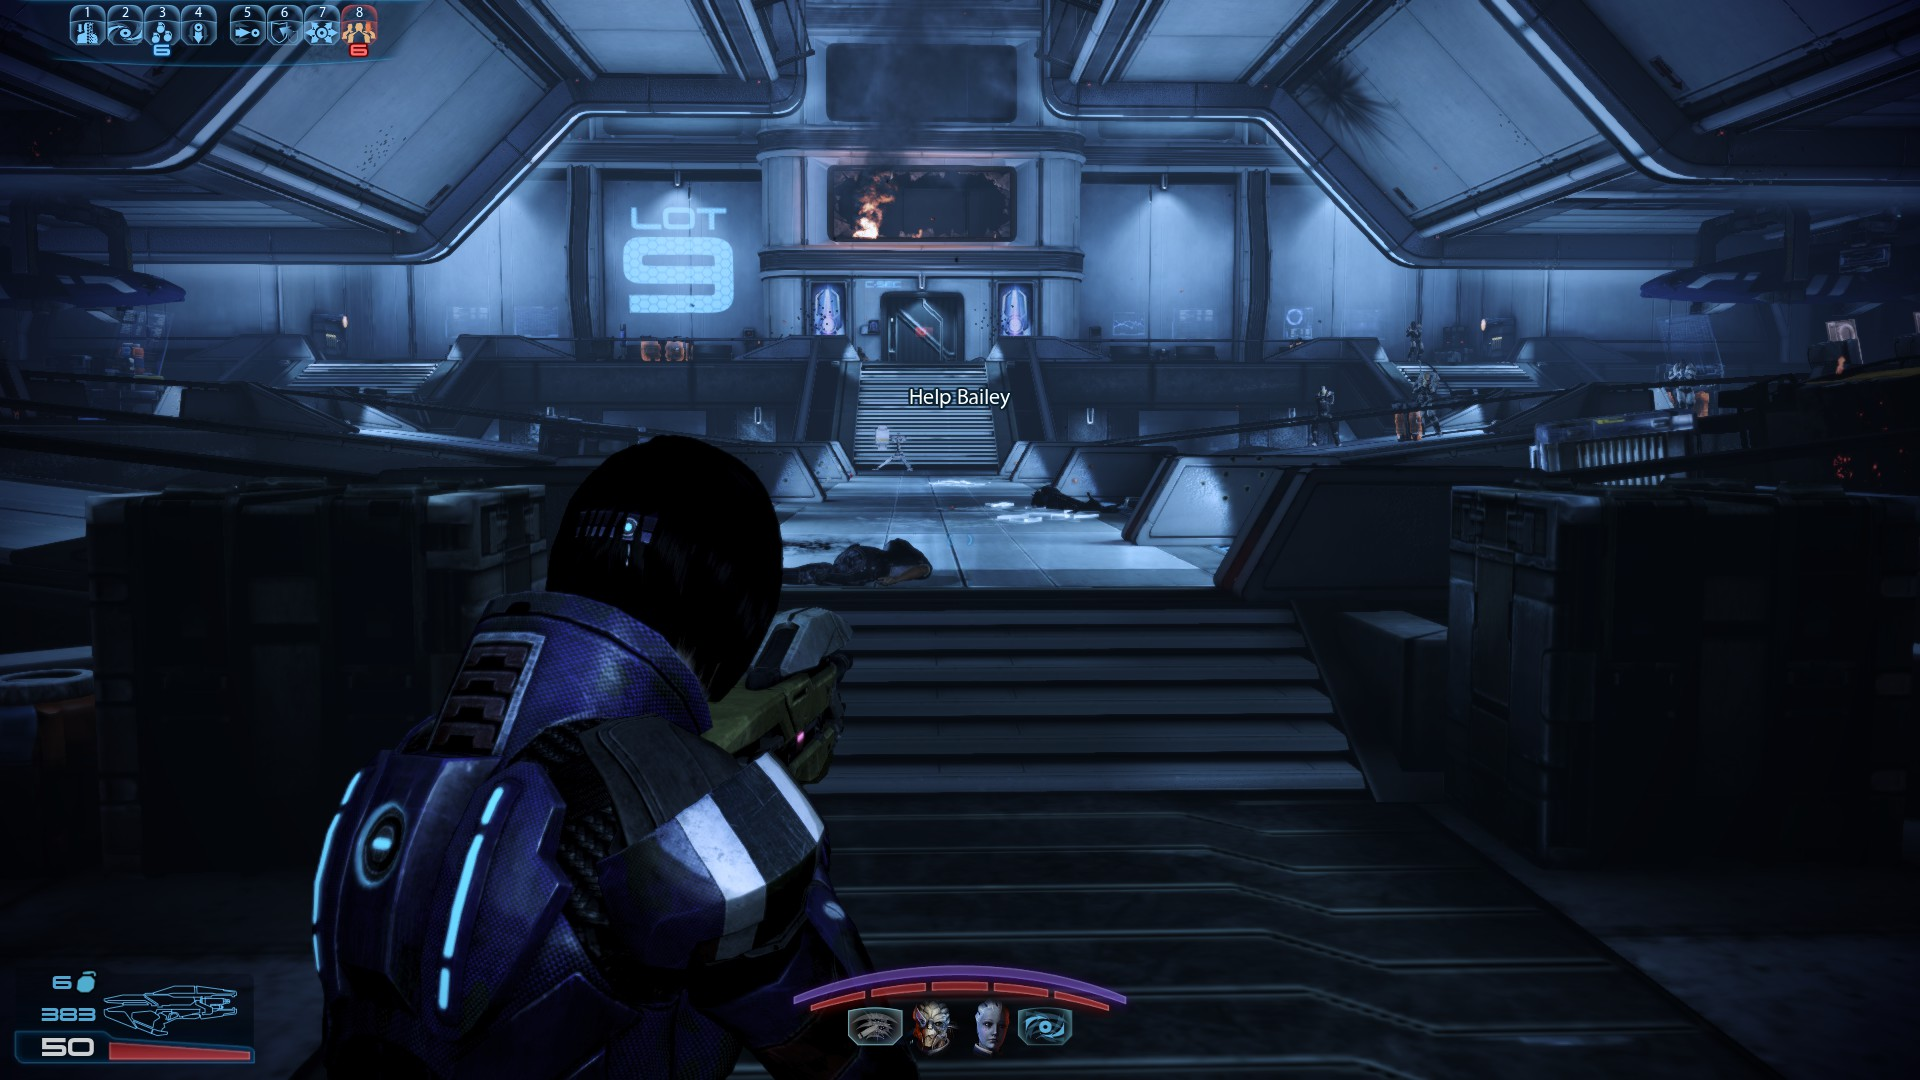 Mass Effect 3 Deserves To Be Remembered For More Than Its Final 15 Minutes  Usgamer-7204